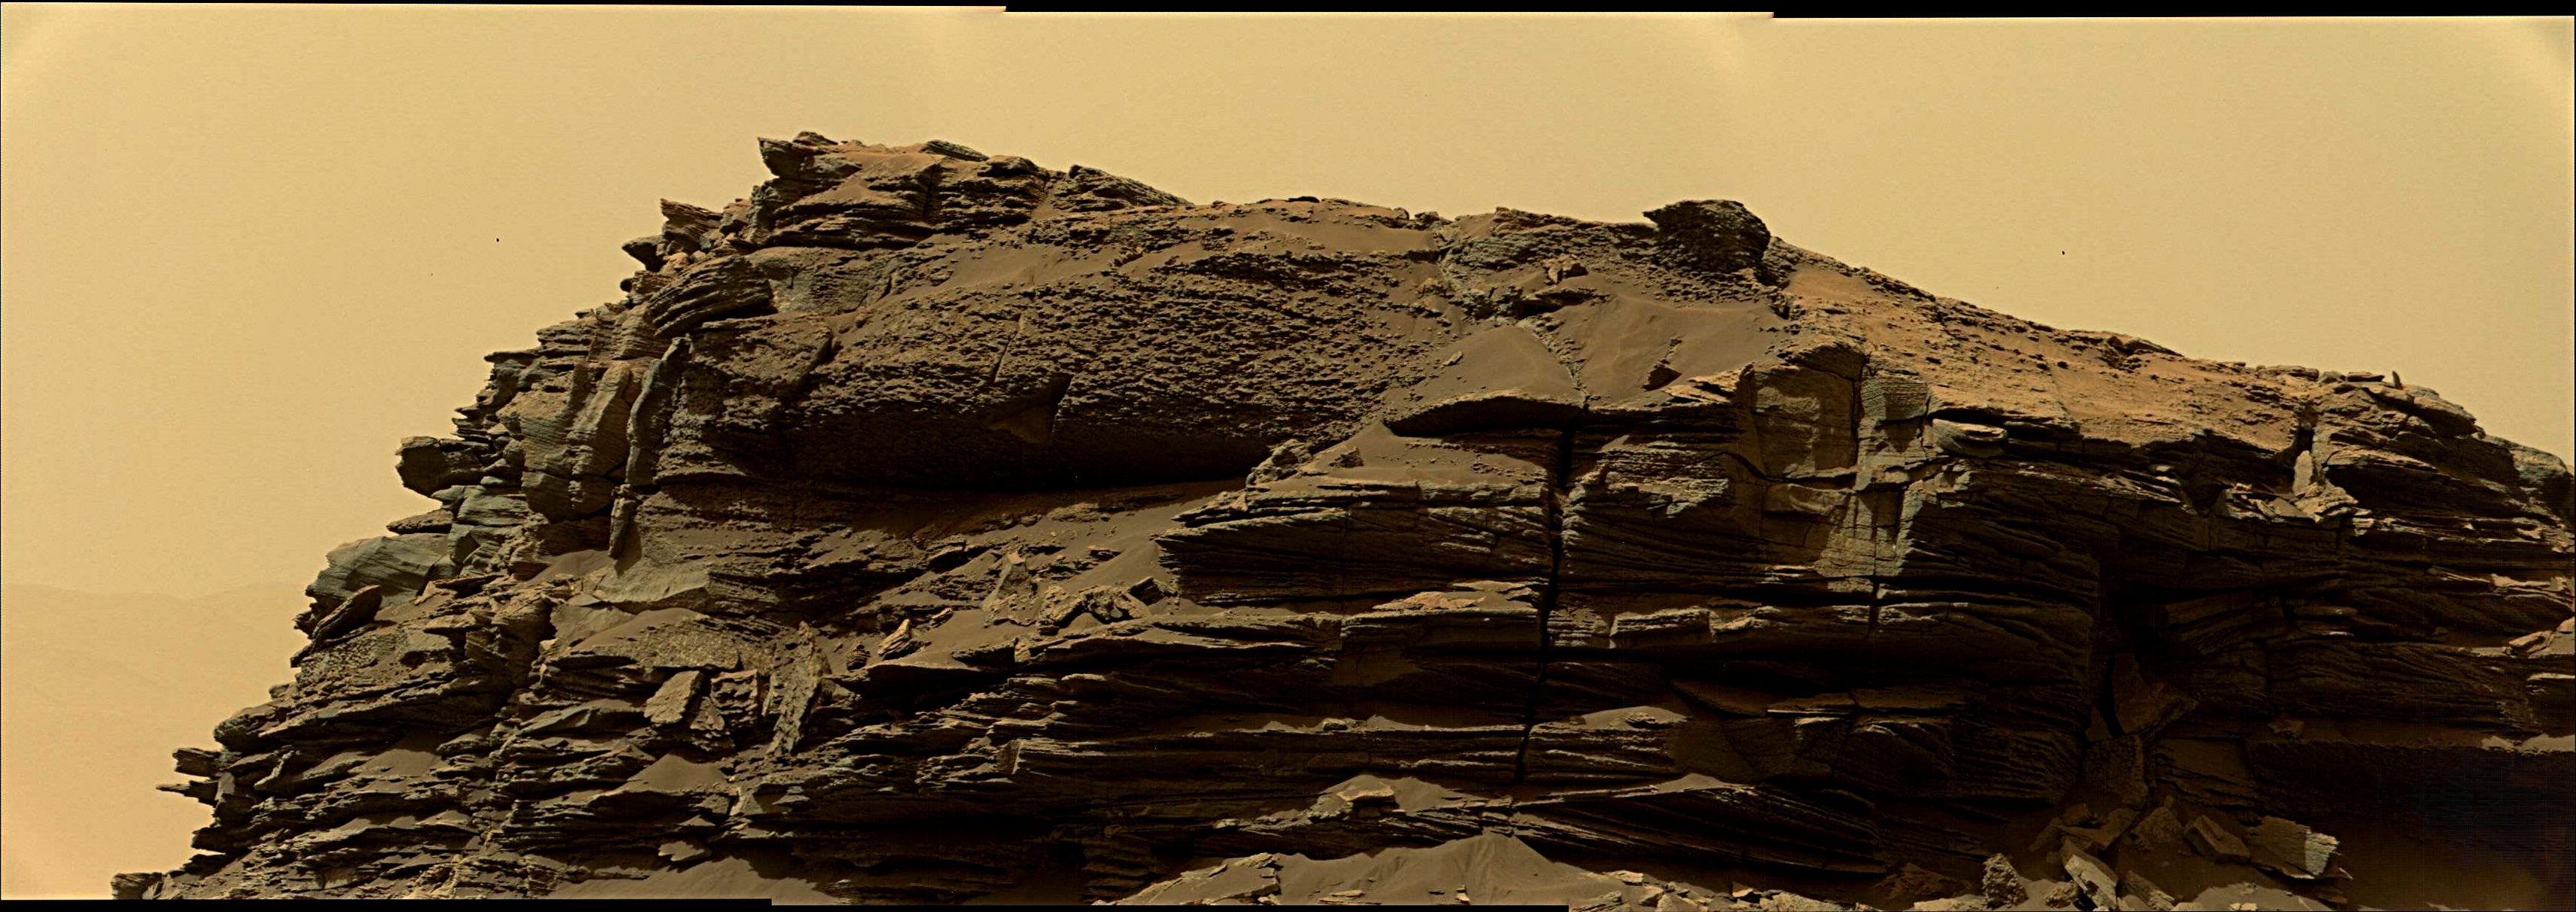 panoramic-curiosity-rover-view-5e-sol-1454-was-life-on-mars